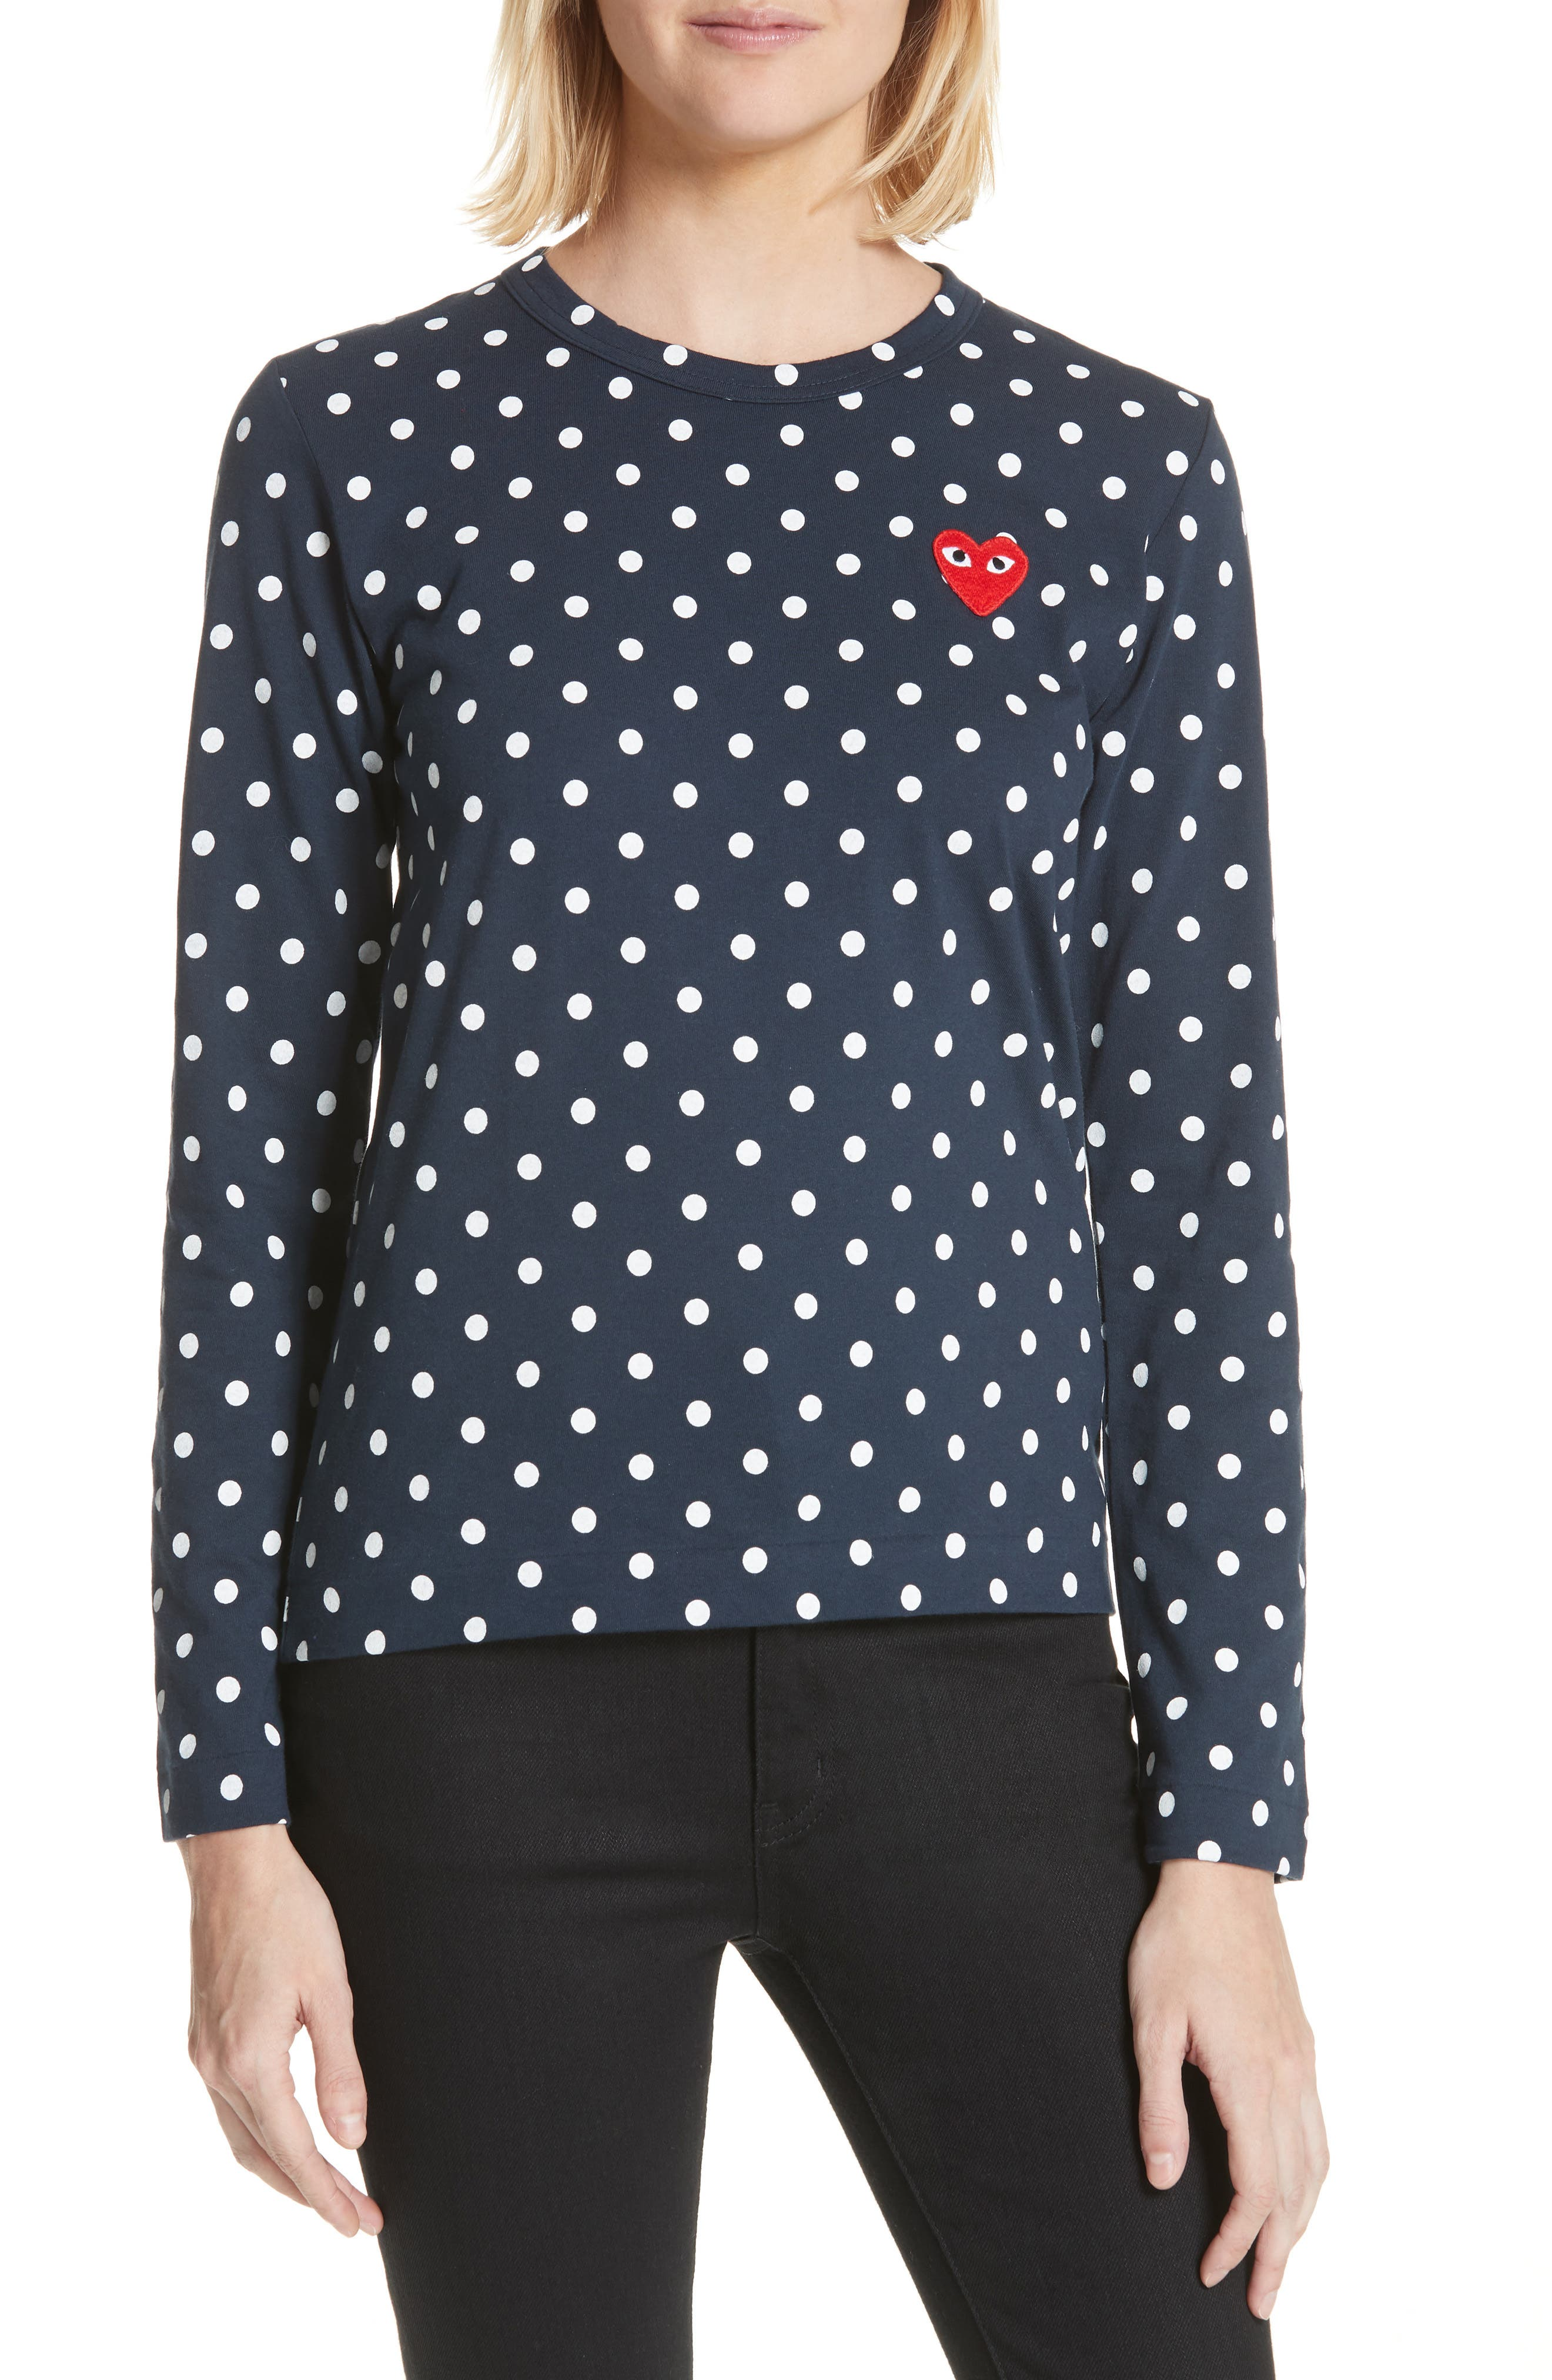 Comme des Garçons PLAY Red Heart Polka Dot Tee,                             Main thumbnail 1, color,                             Navy/ White